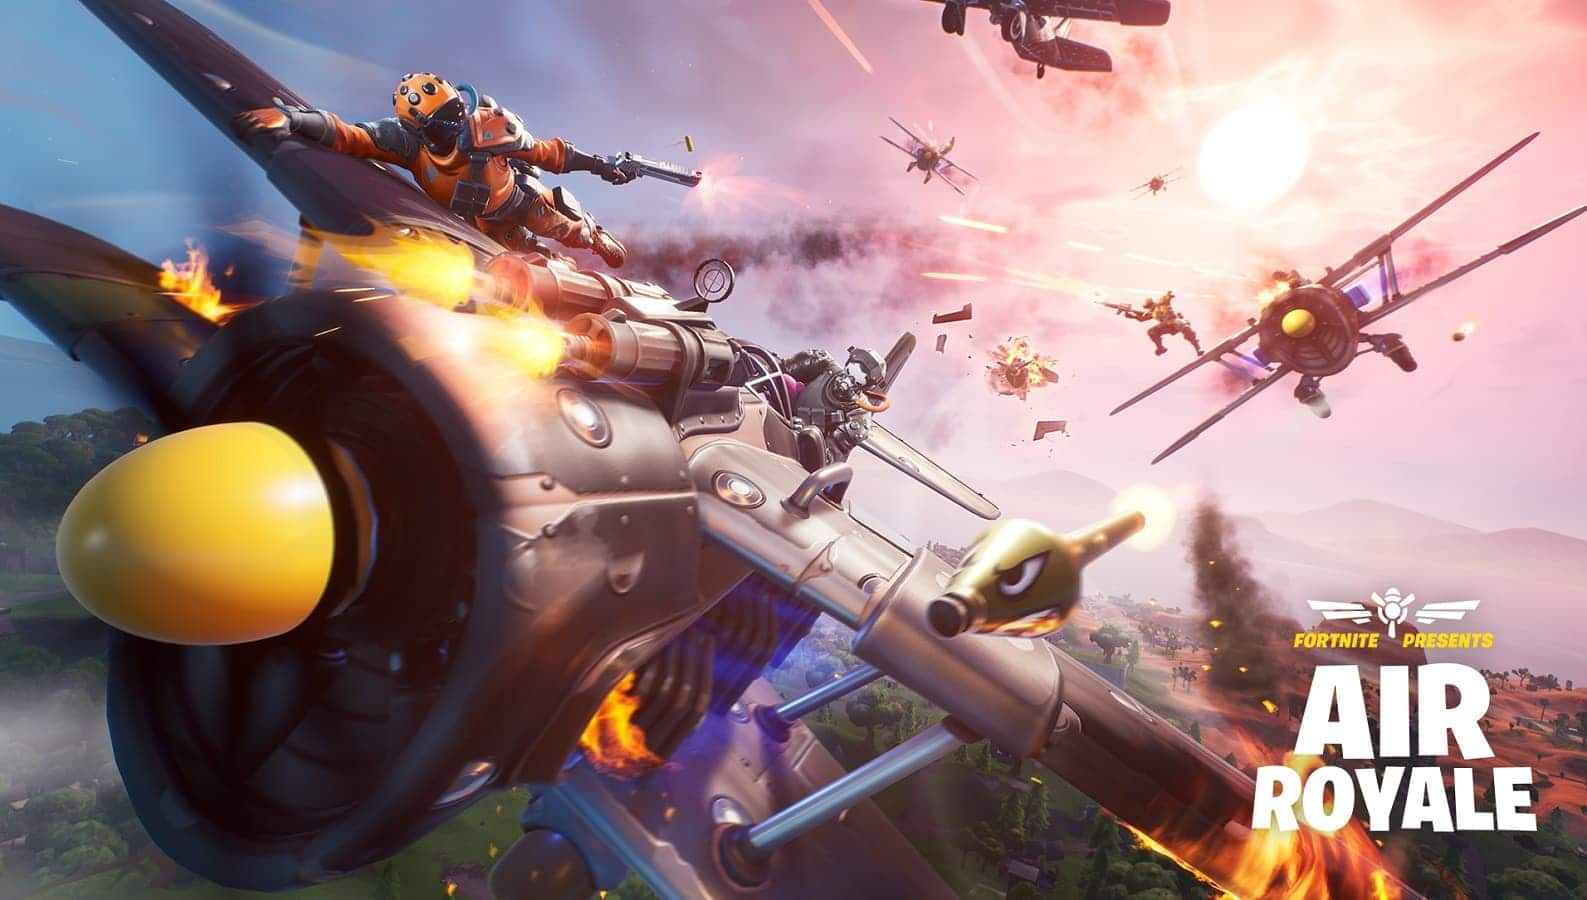 fortnite air royale limited time mode